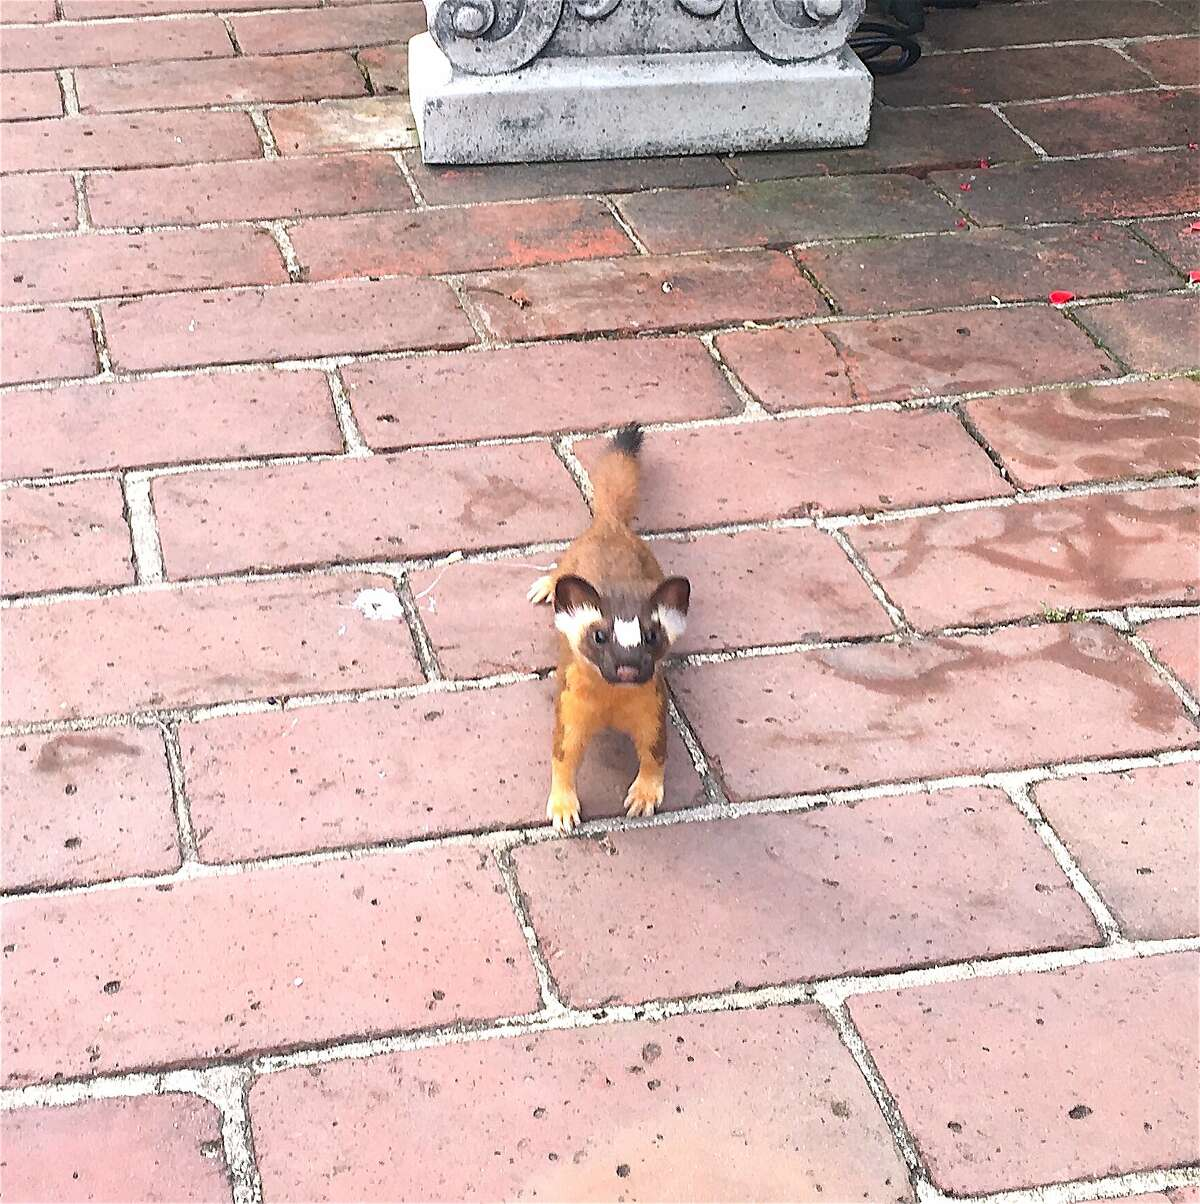 A rare California long-tailed weasel appeared in the courtyard at the Filoli Estate, a property of the National Trust for Historic Preservation, in Woodside on the Peninsula.